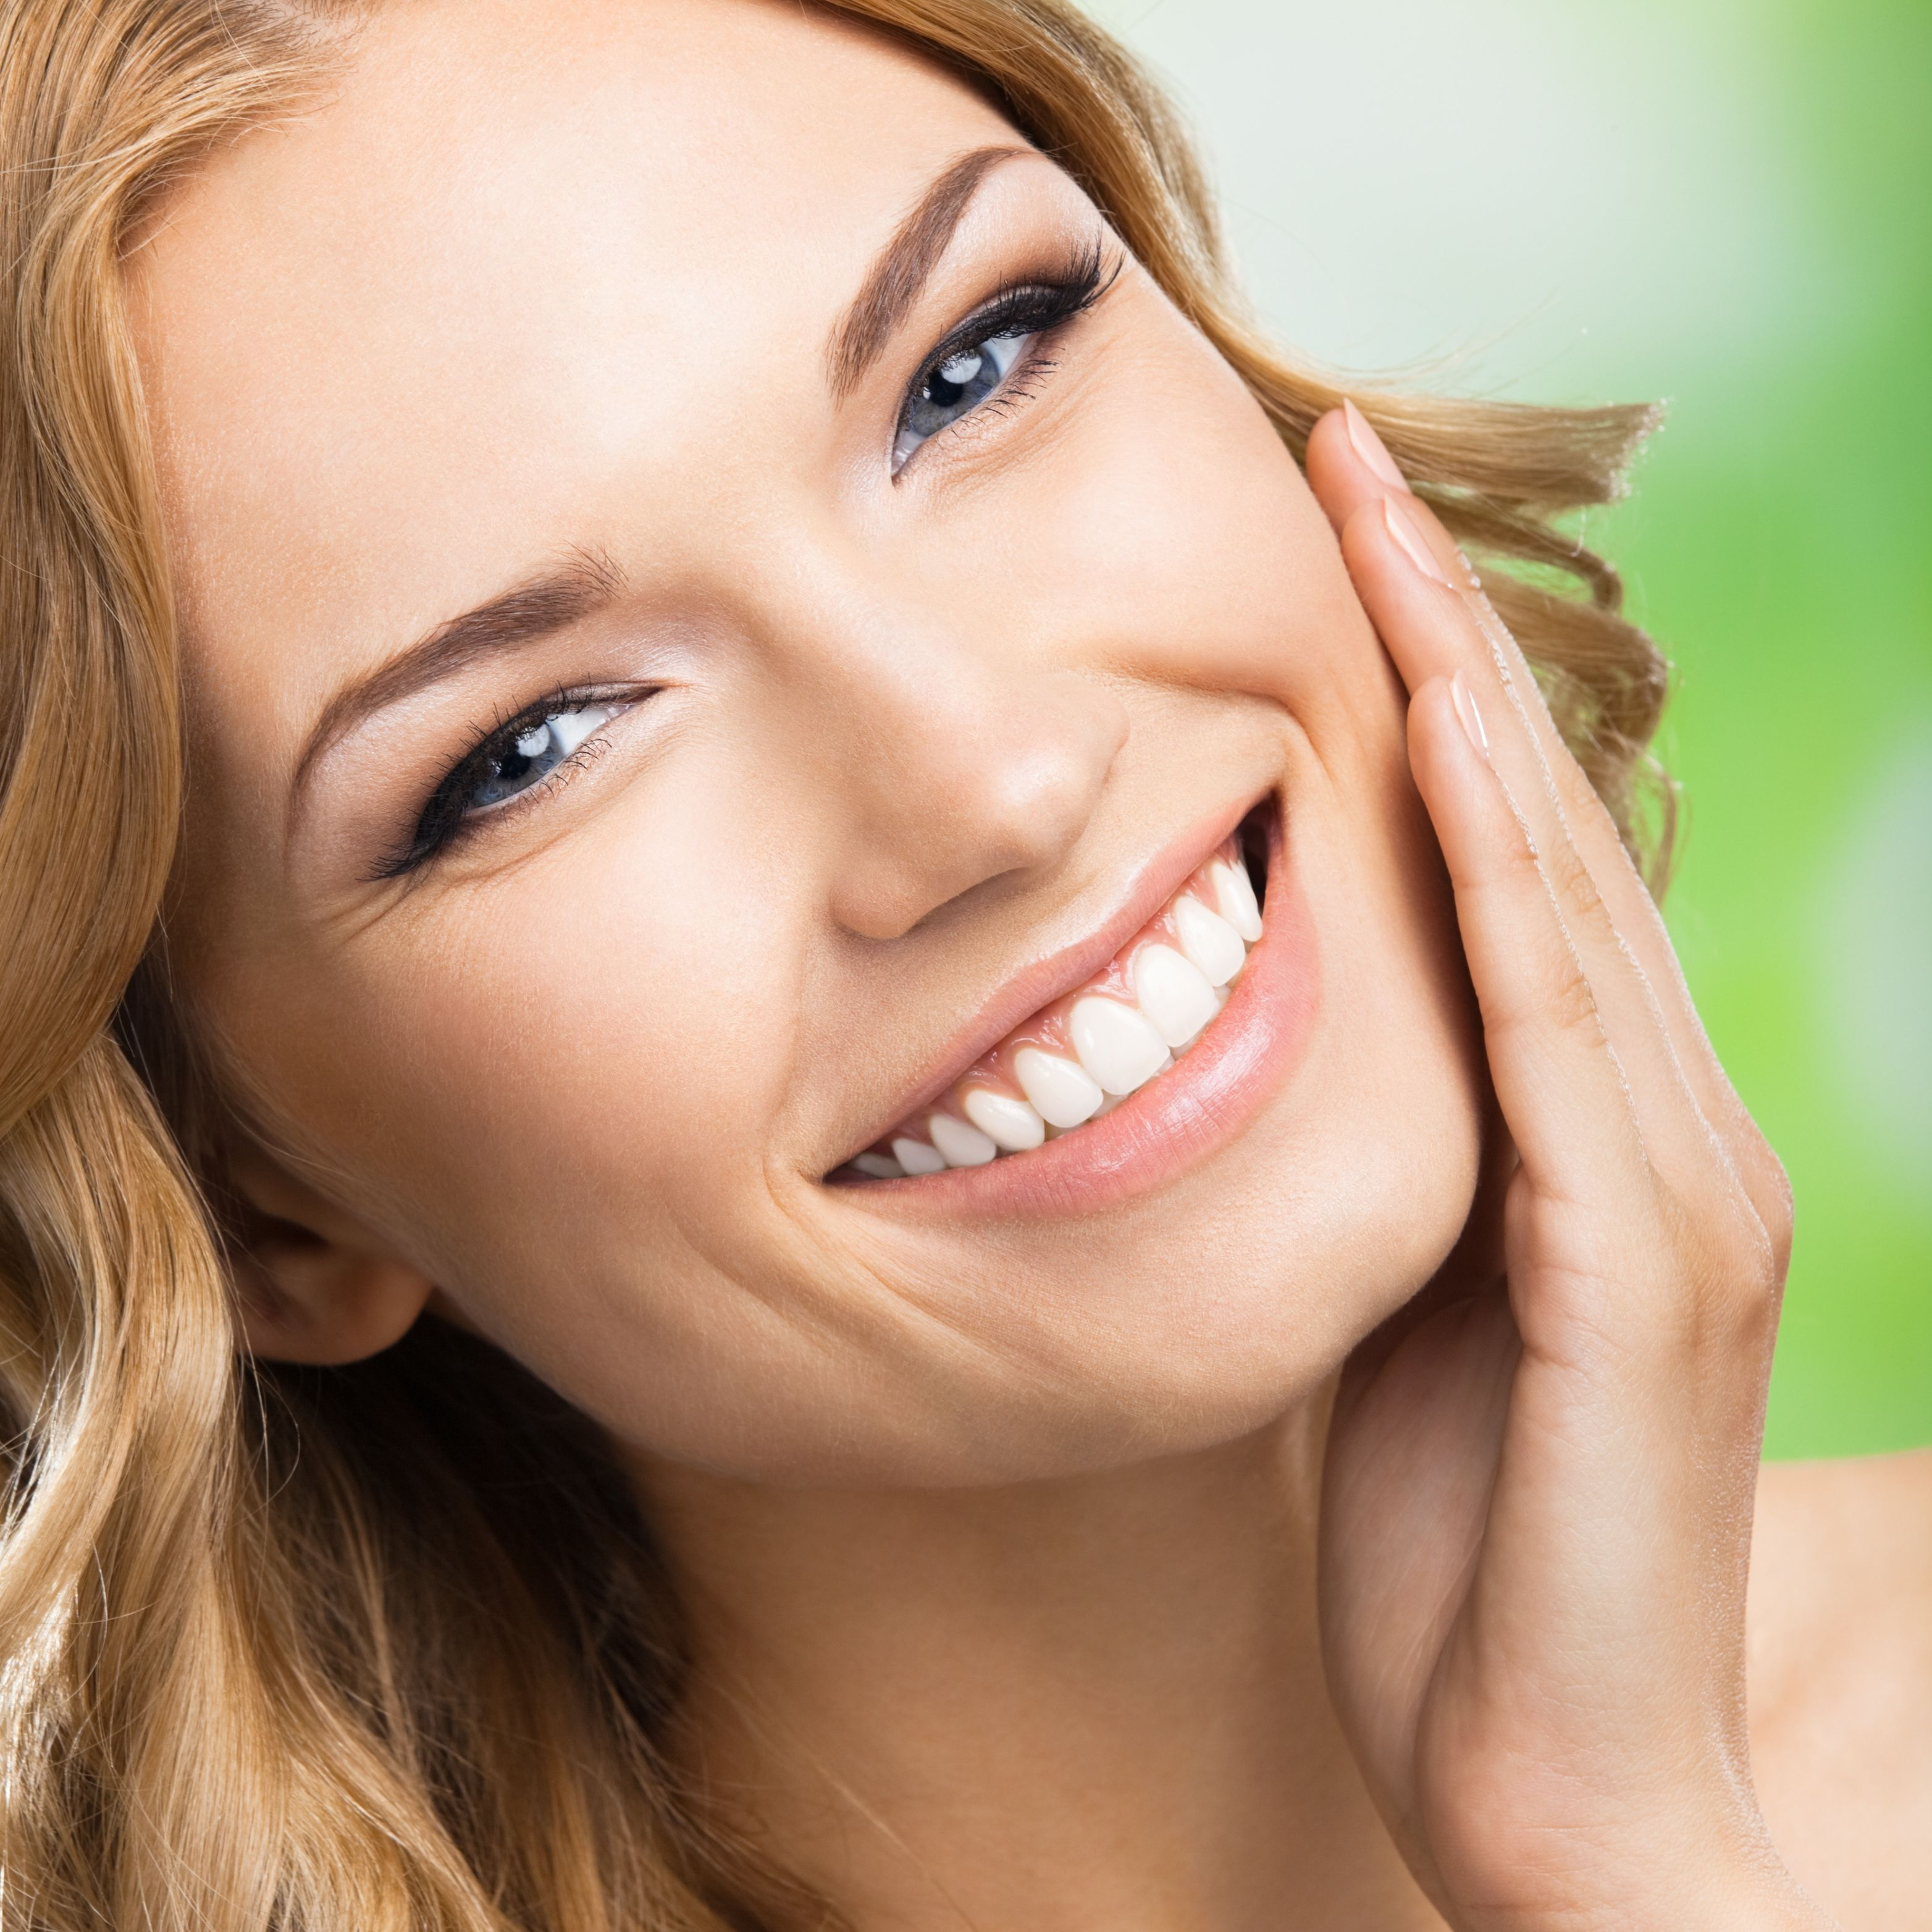 Teeth Implants in Montebello